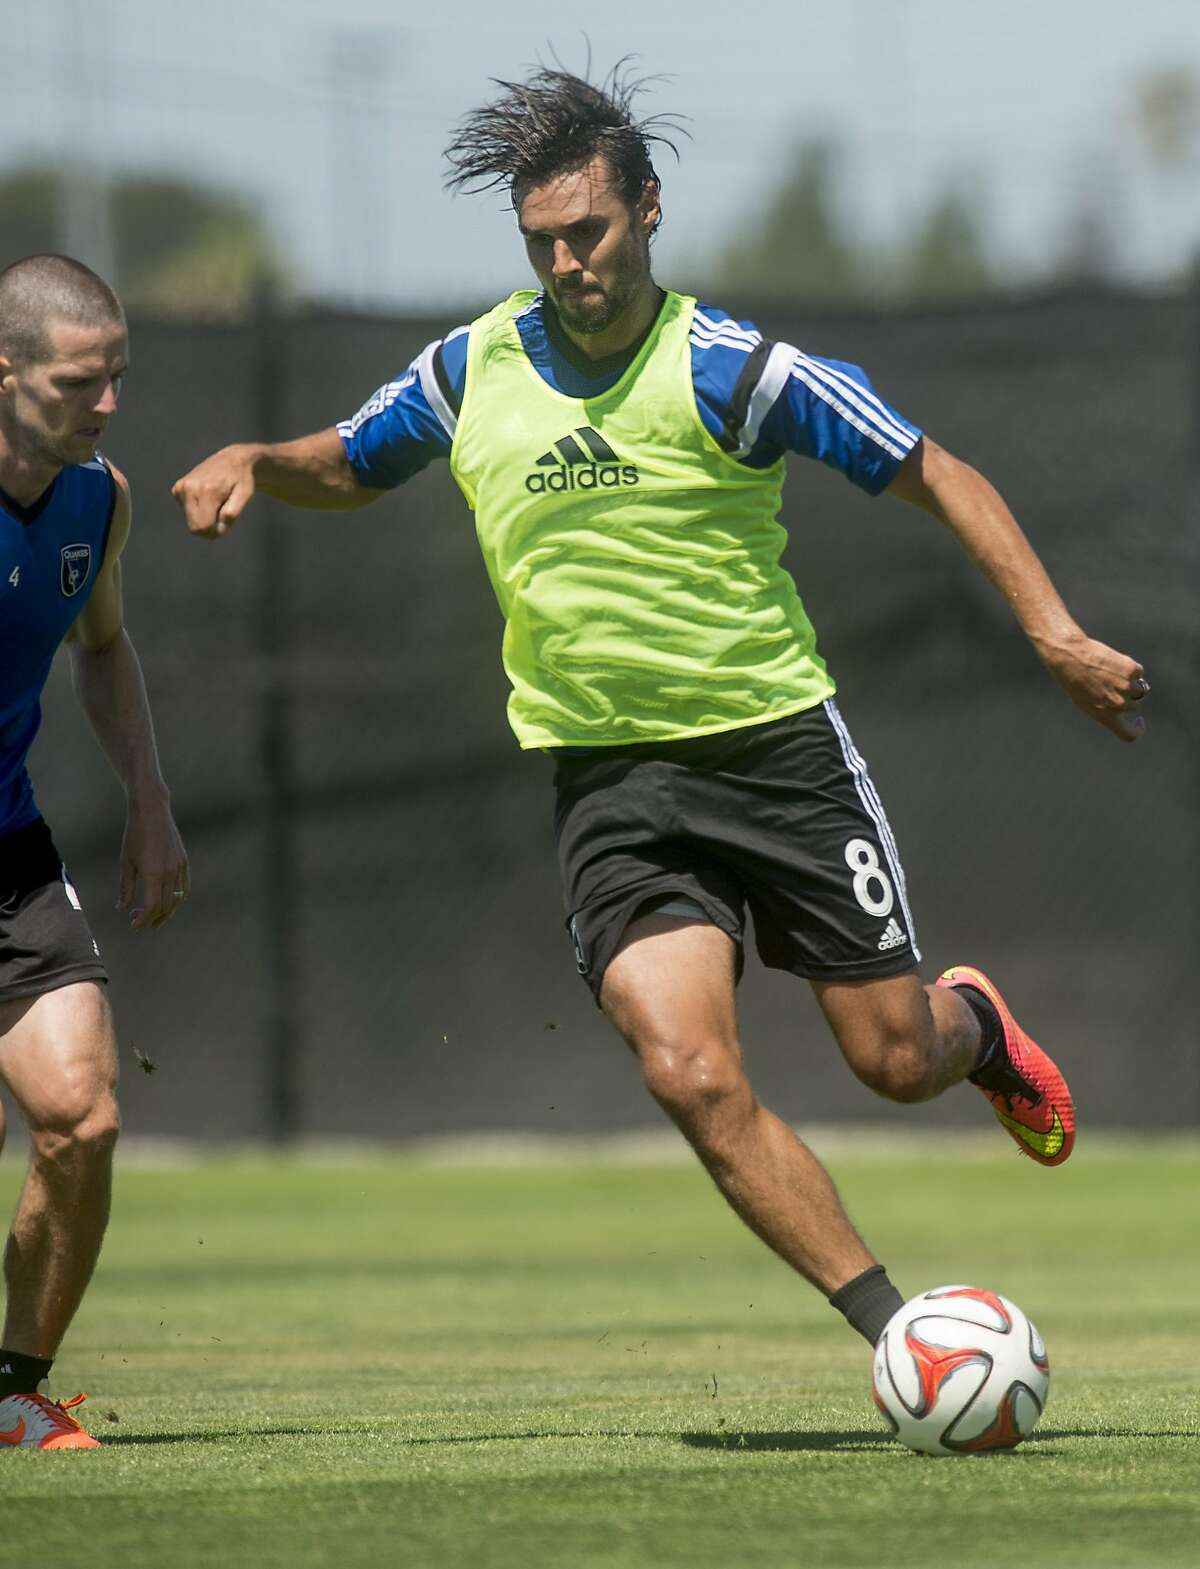 Chris Wondolowski, who played forward for the U.S. national soccer team in the 2014 World Cup, practices with the San Jose Earthquakes on Friday, July 4, 2014, in San Jose, Calif. (AP Photo/Noah Berger)